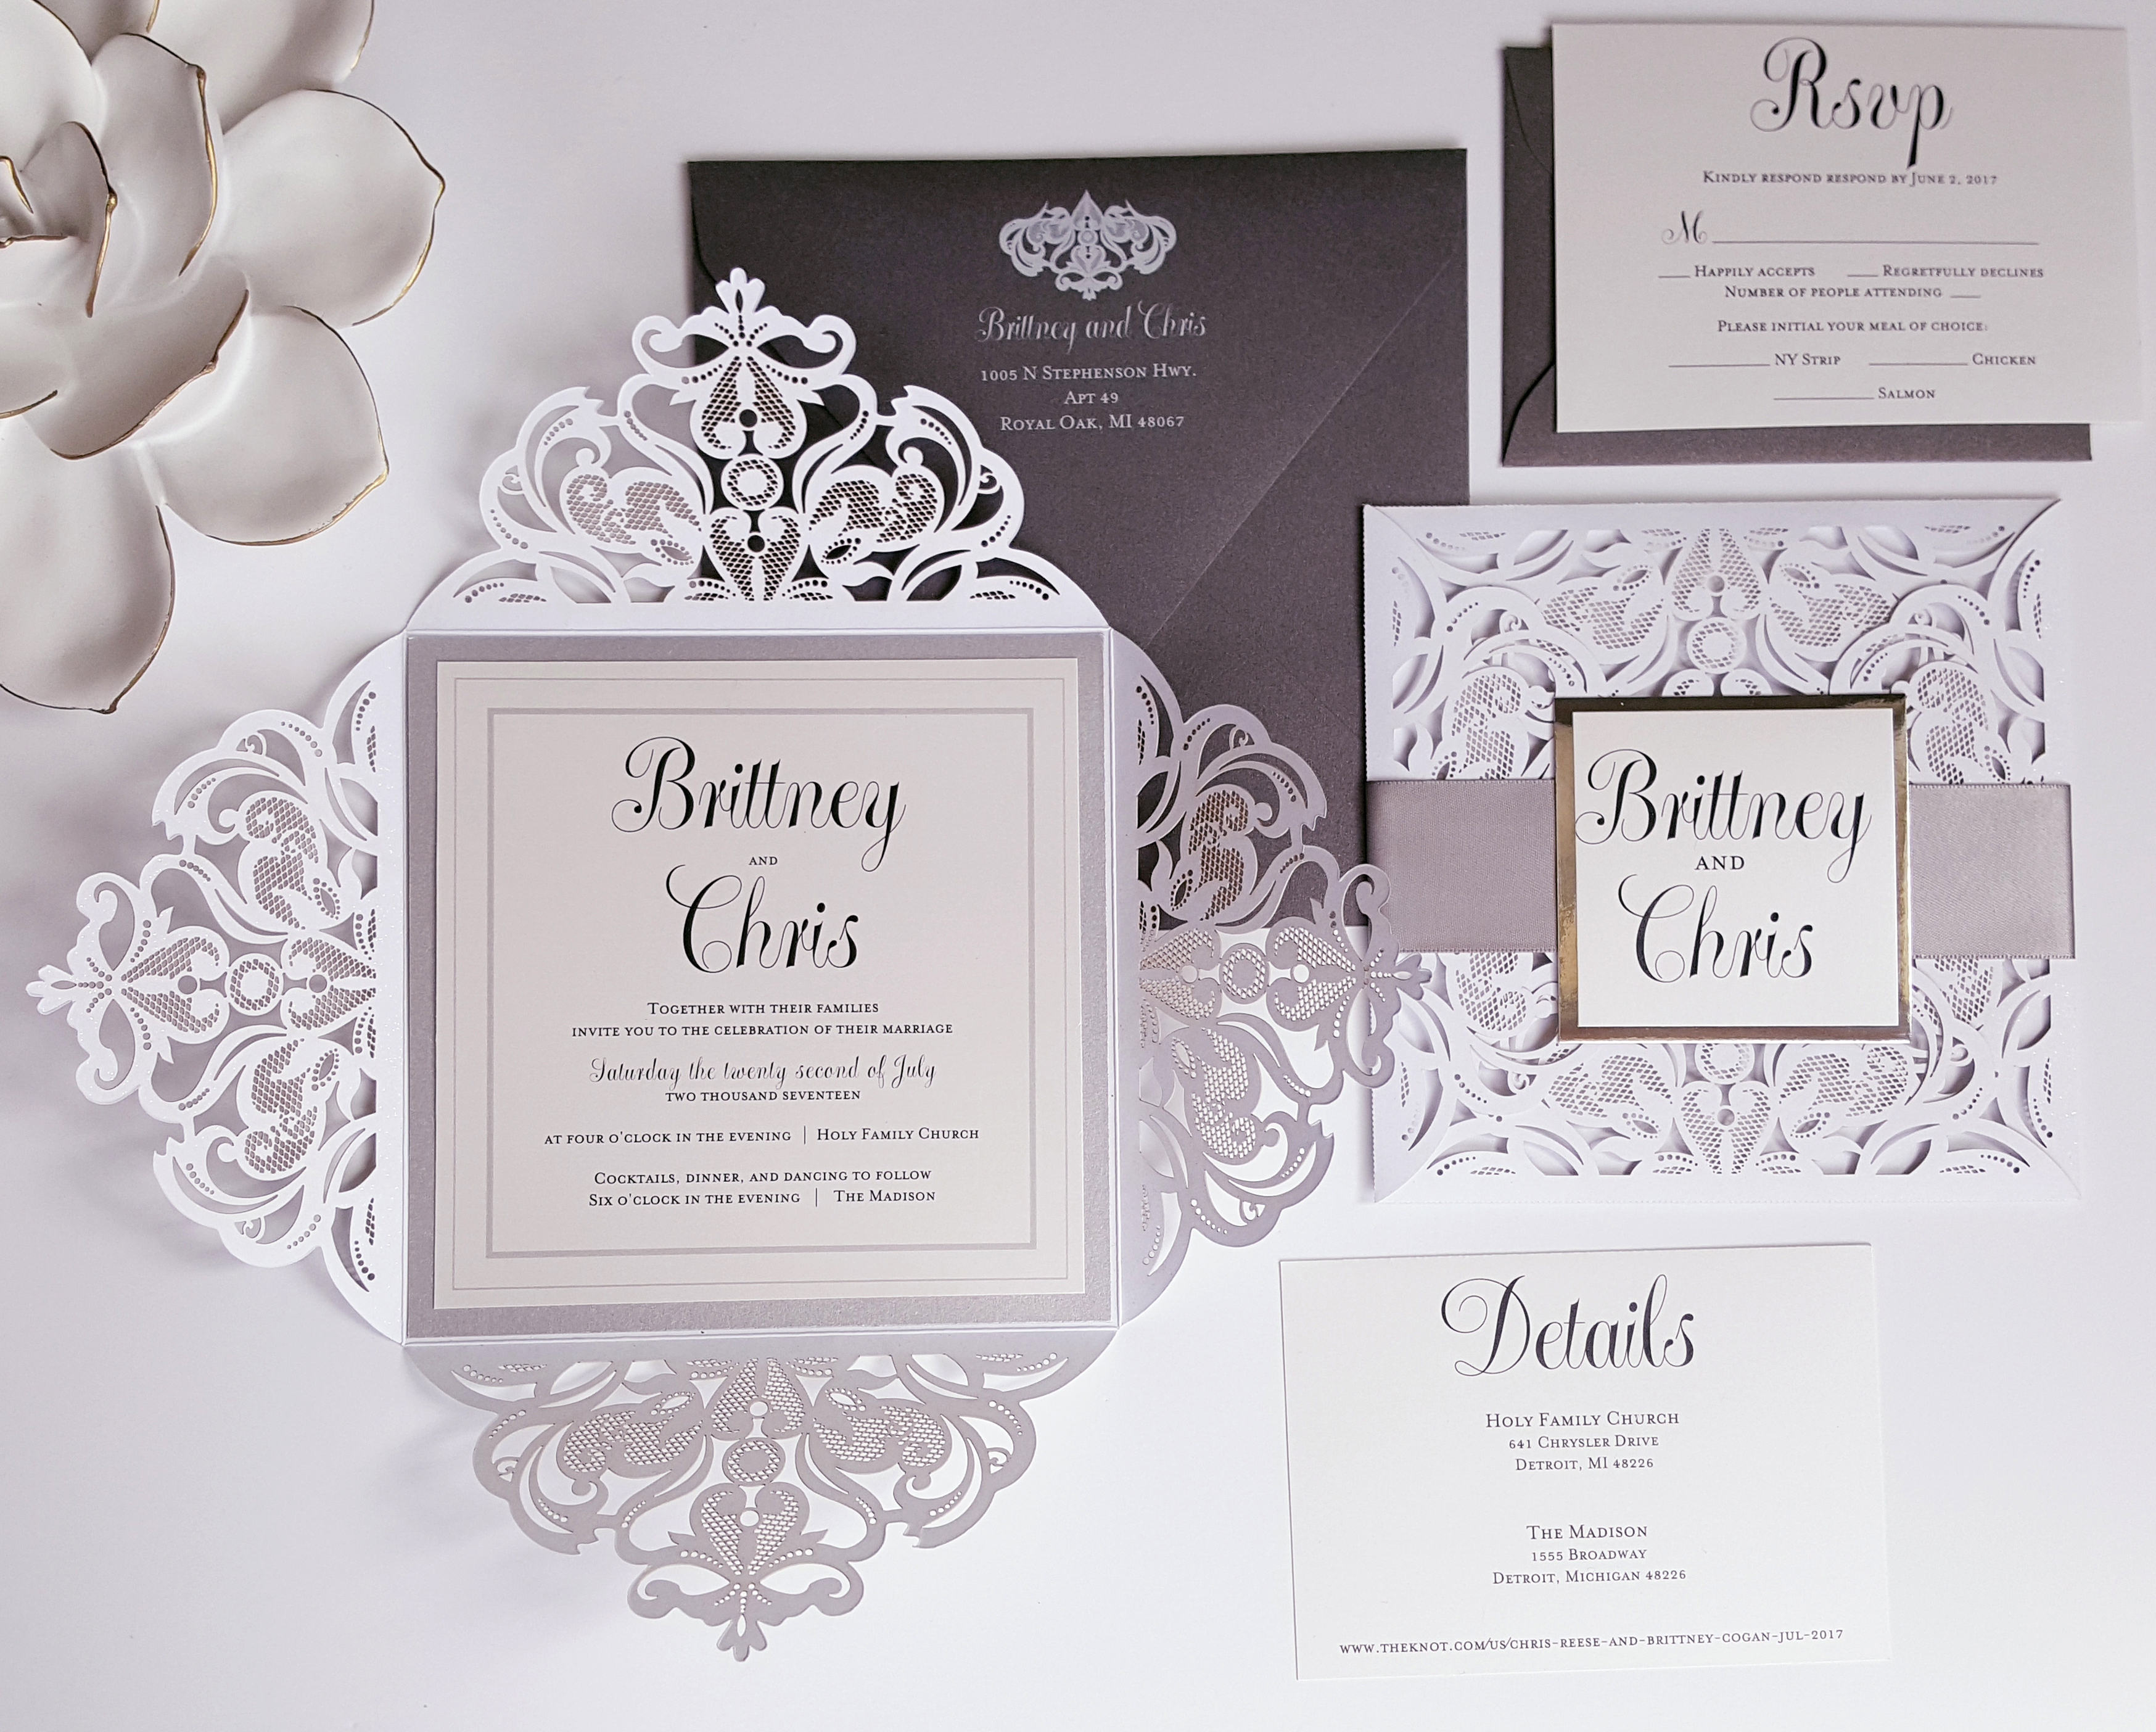 White And Silver Weding Invitations 06 - White And Silver Weding Invitations